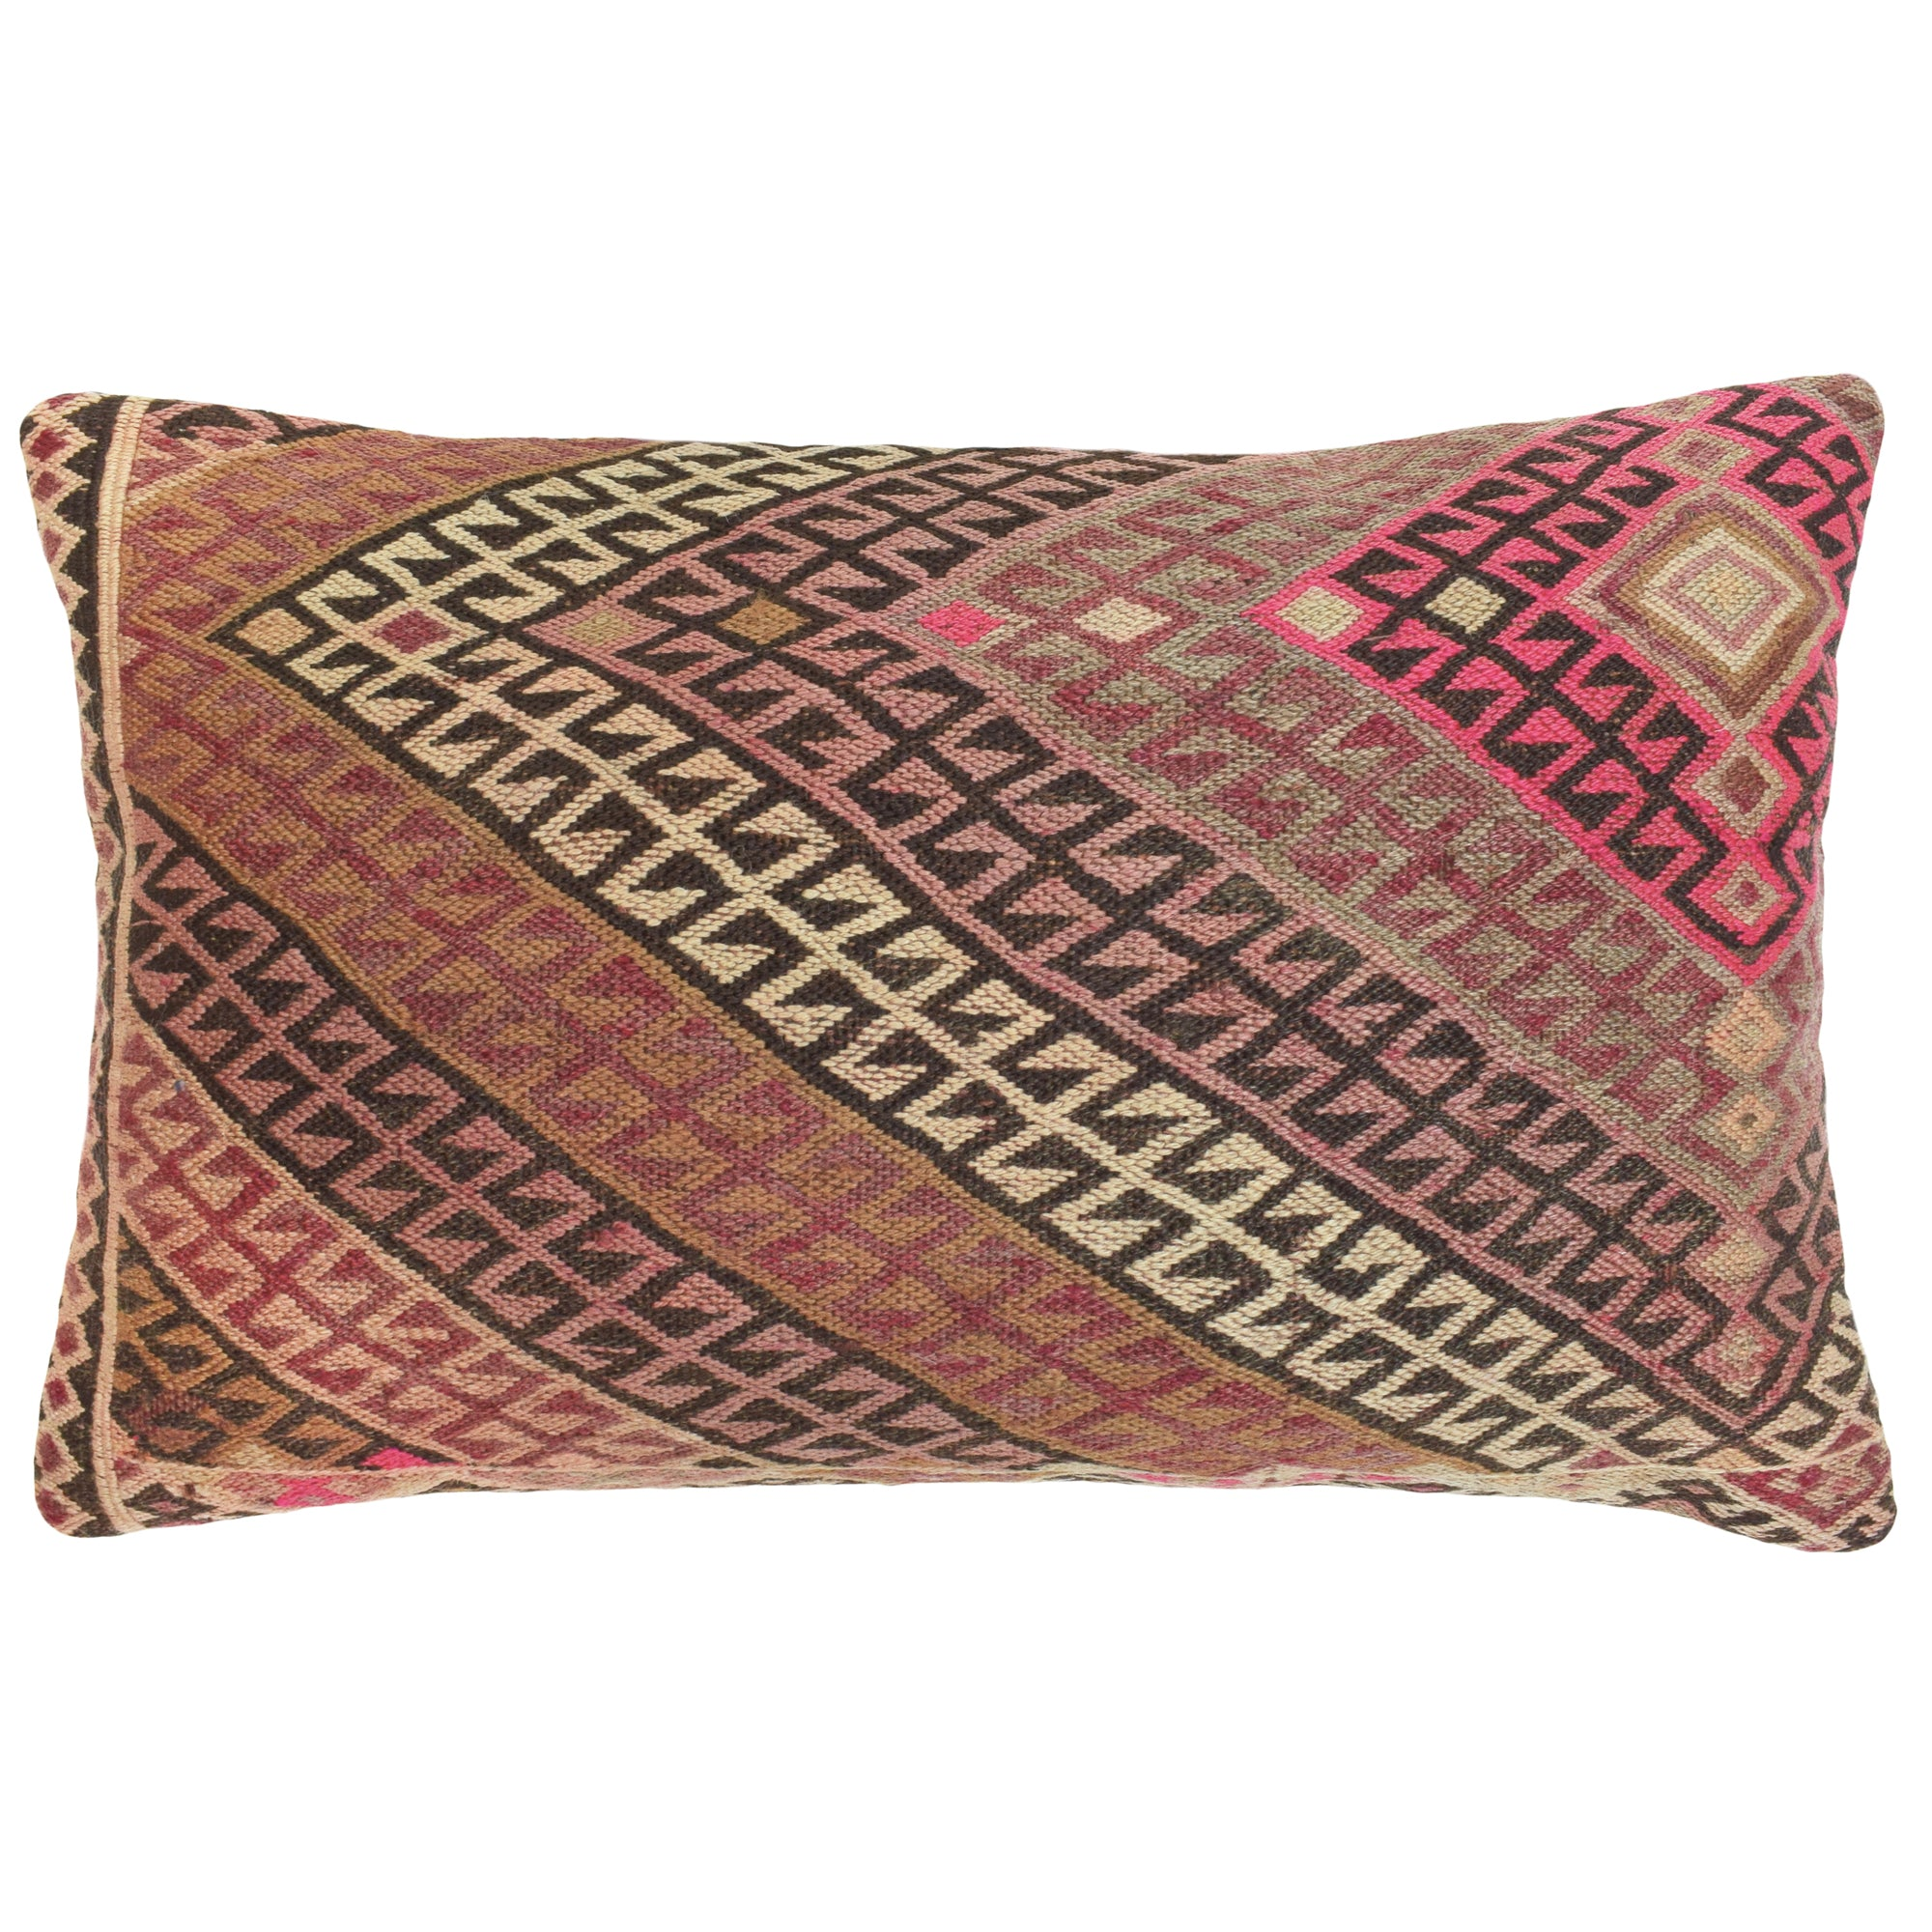 Yonder Living Vintage Kilim Cushion Red Yellow